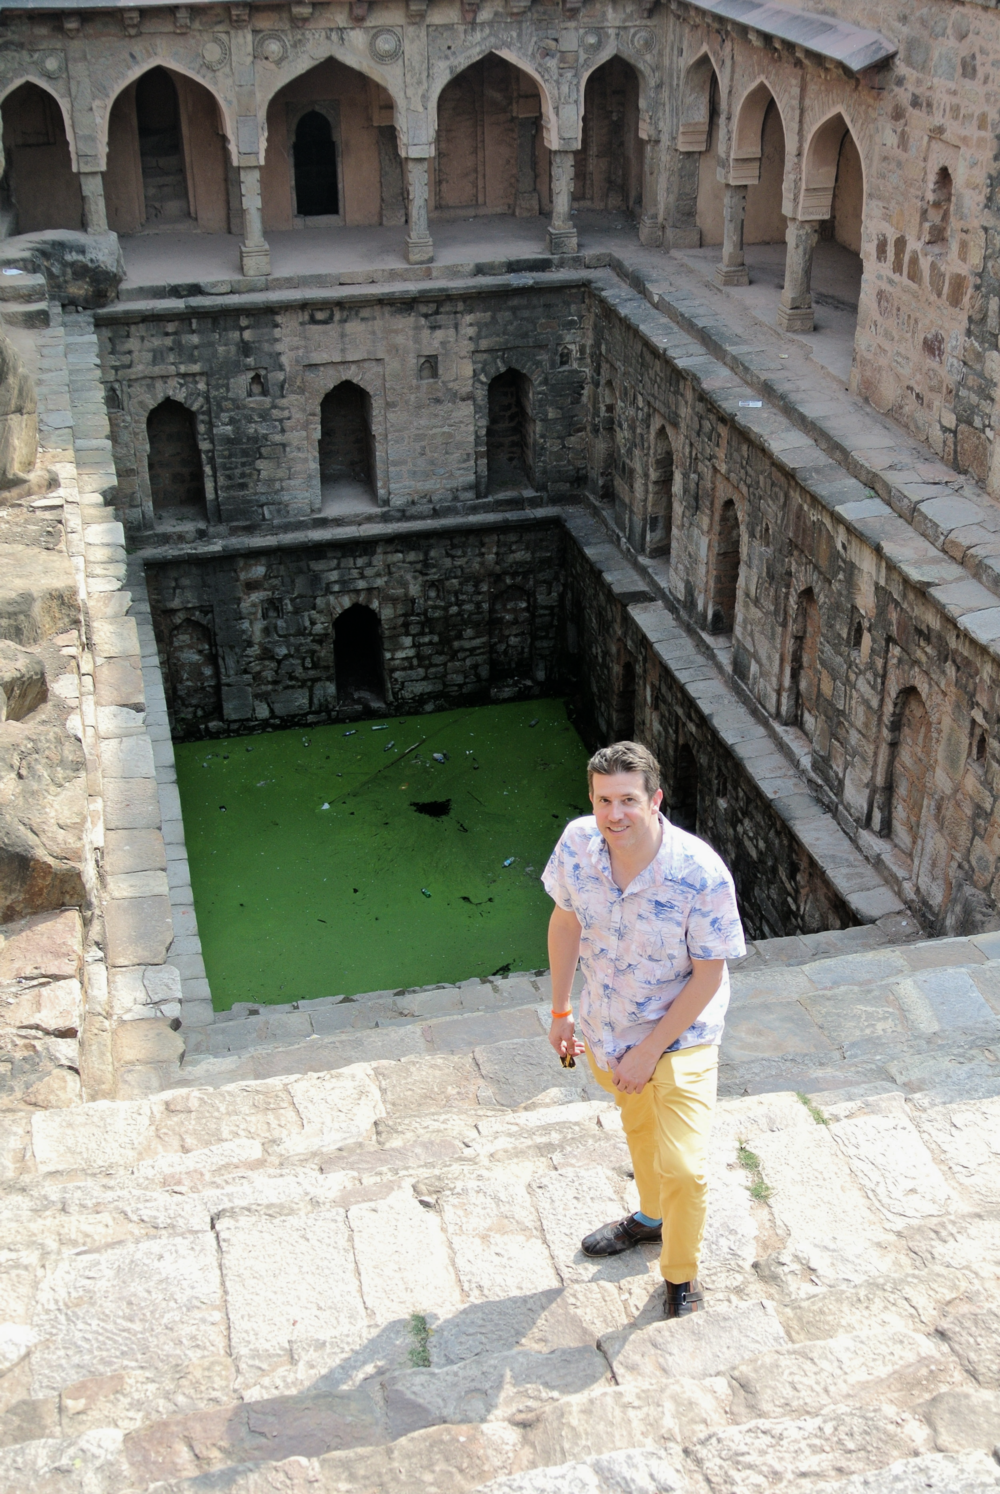 Wally overcame his fear of heights to shimmy along narrow ledges at the Rajon Ki Baoli stepwell in Mehrauli Archeological Park